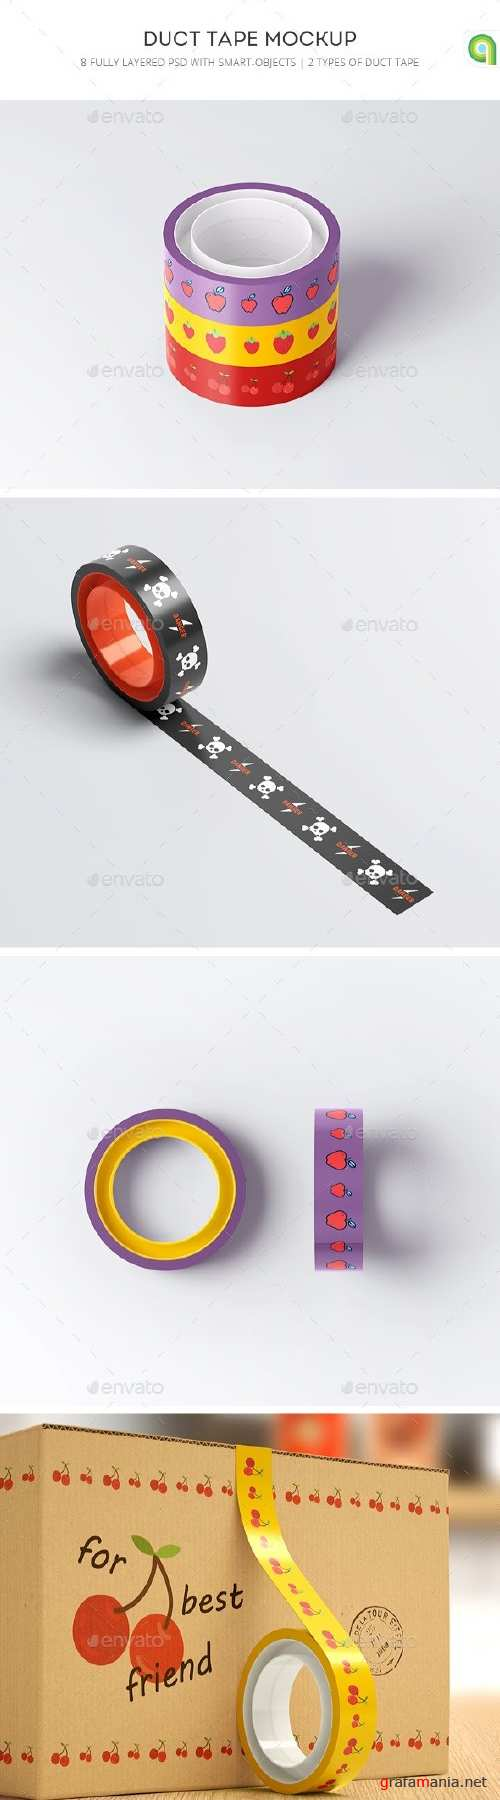 Duct Tape Mock-up - 17375525